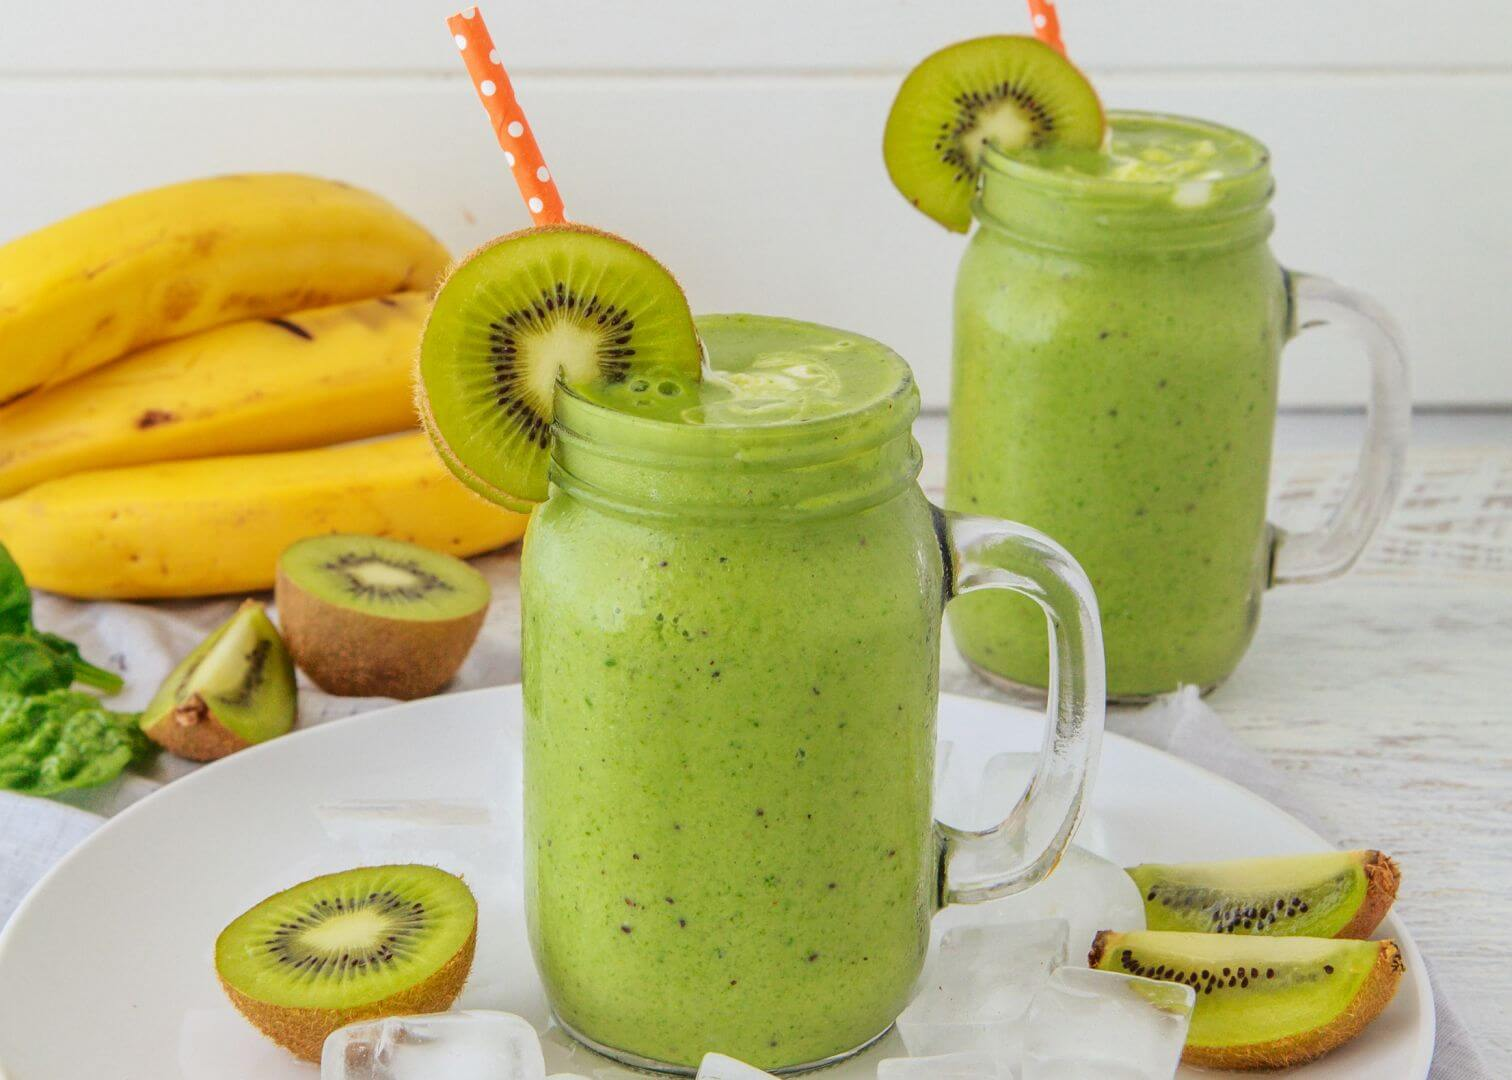 Try This Banana and Kiwi Fiber Smoothie For Kidney Health And Lower Creatinine